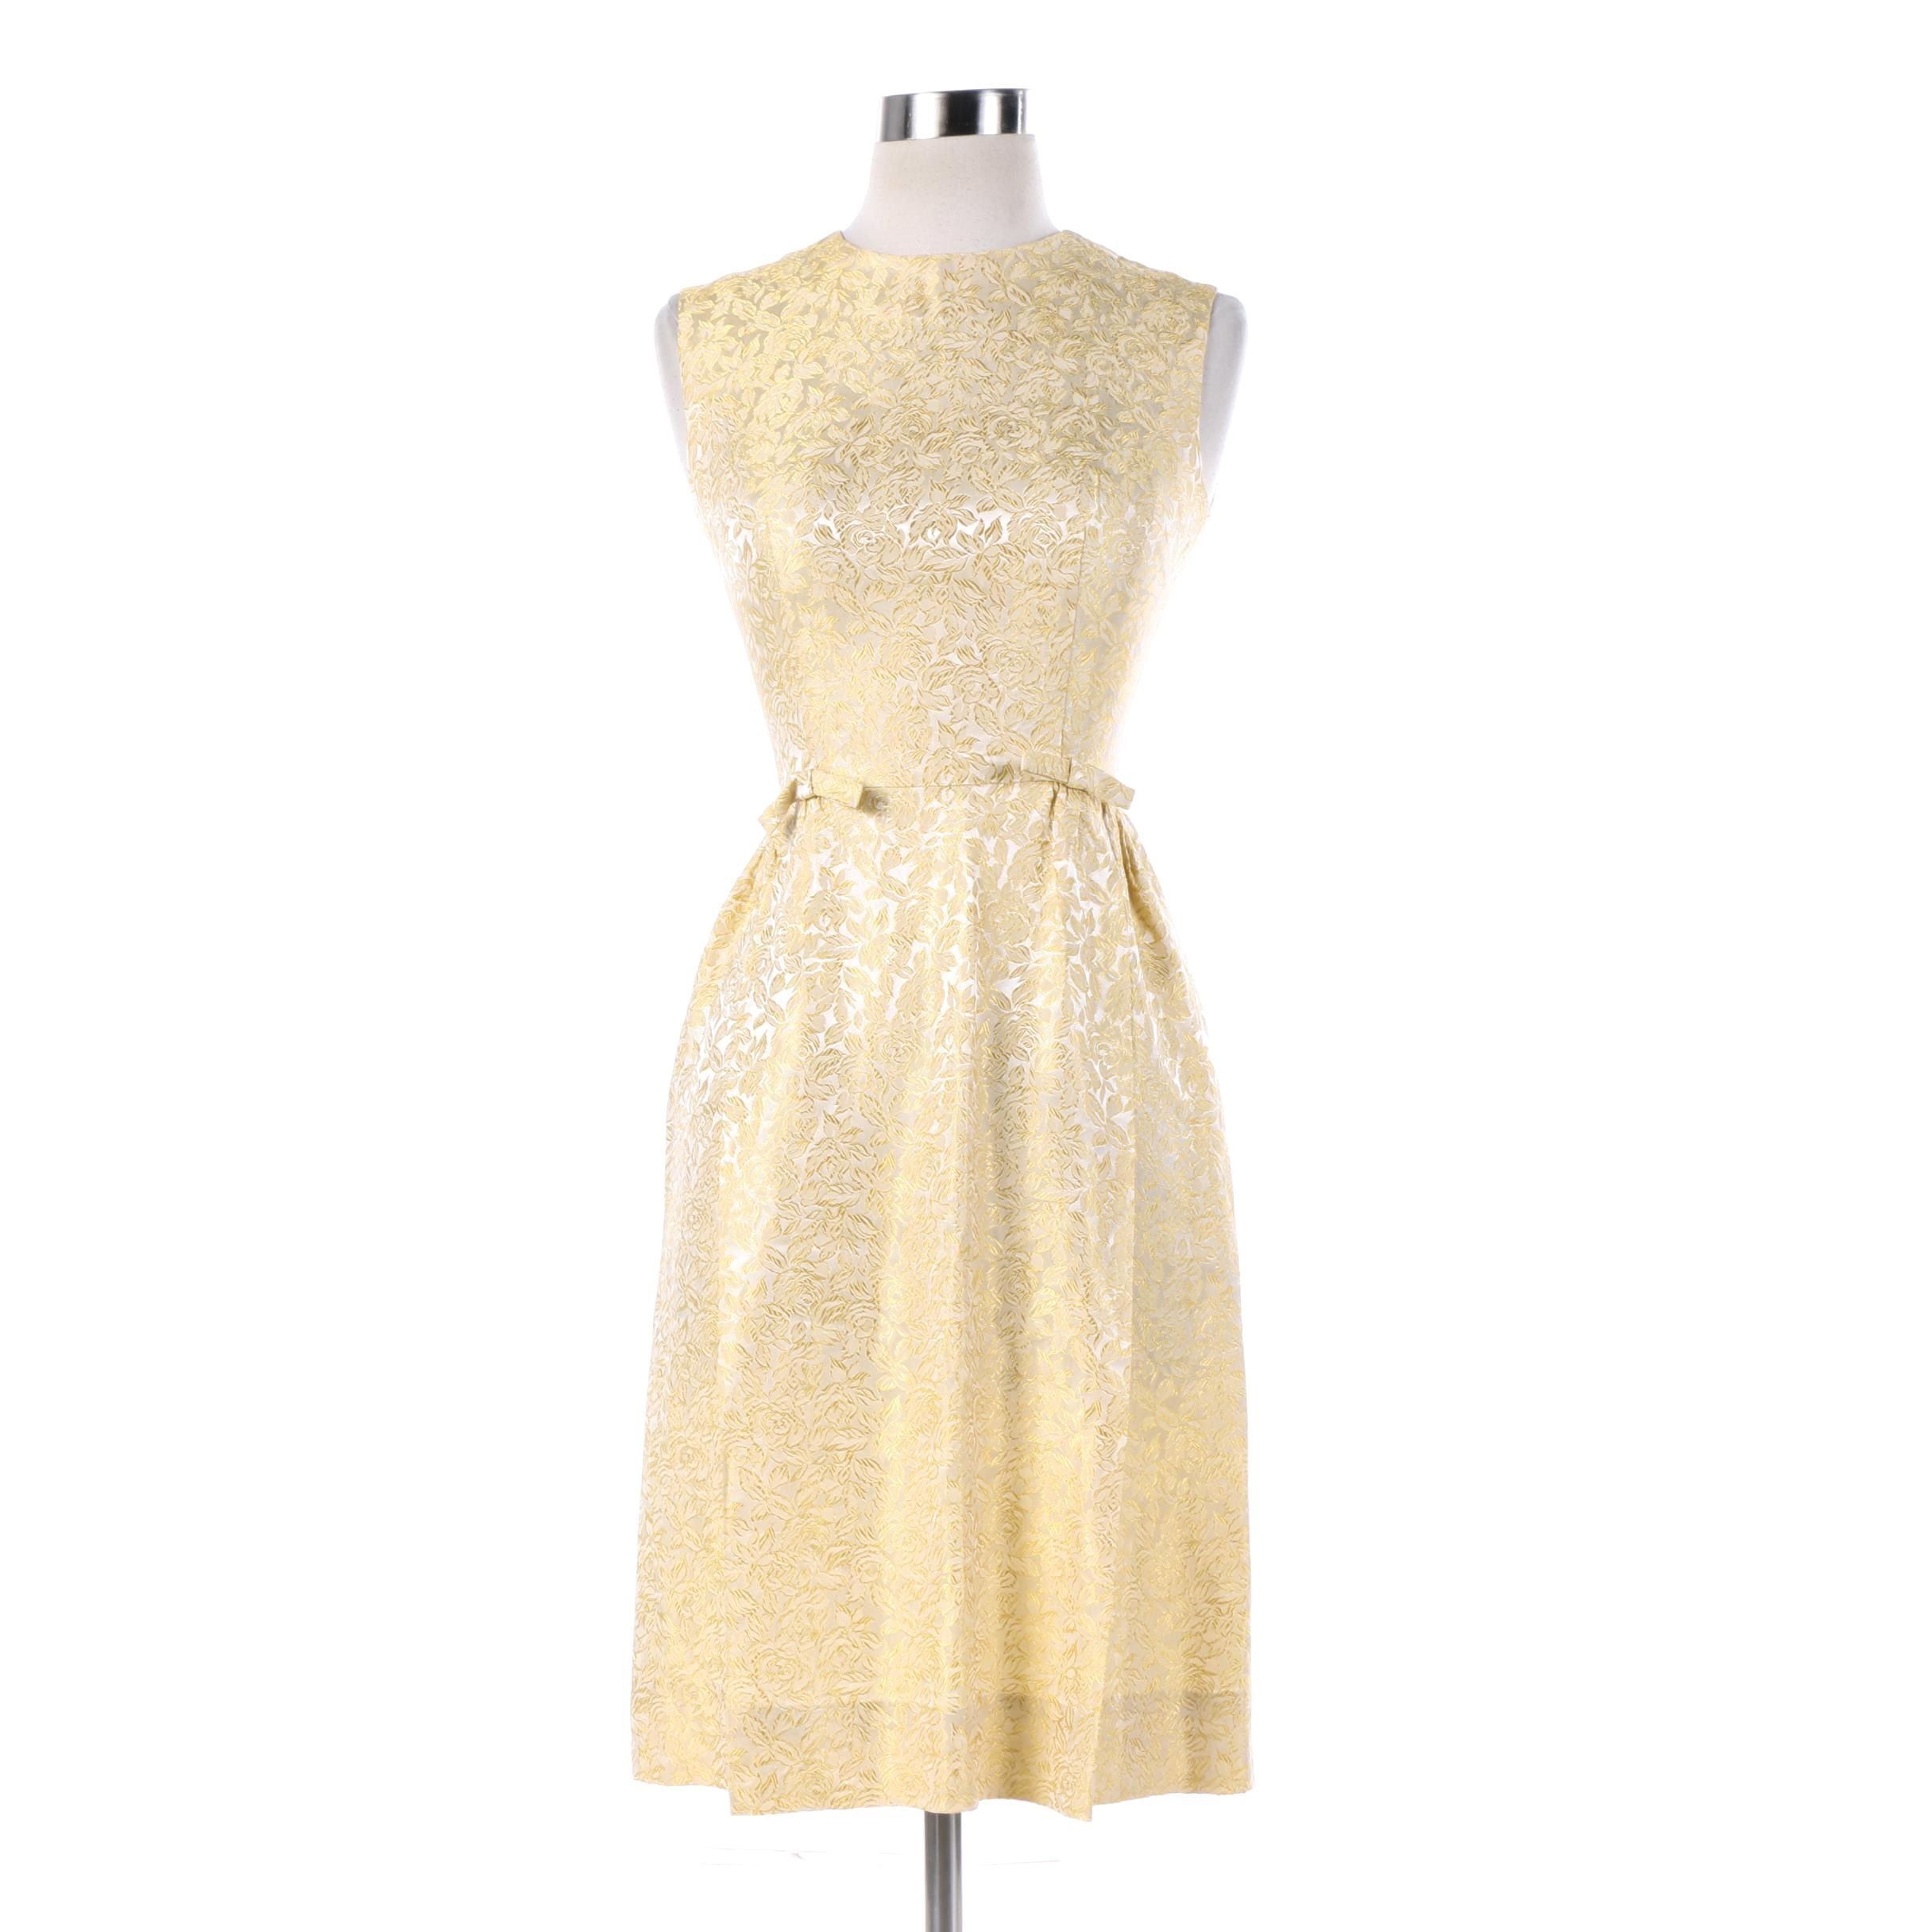 Vintage Gold and Cream Floral Brocade Sleeveless Cocktail Dress